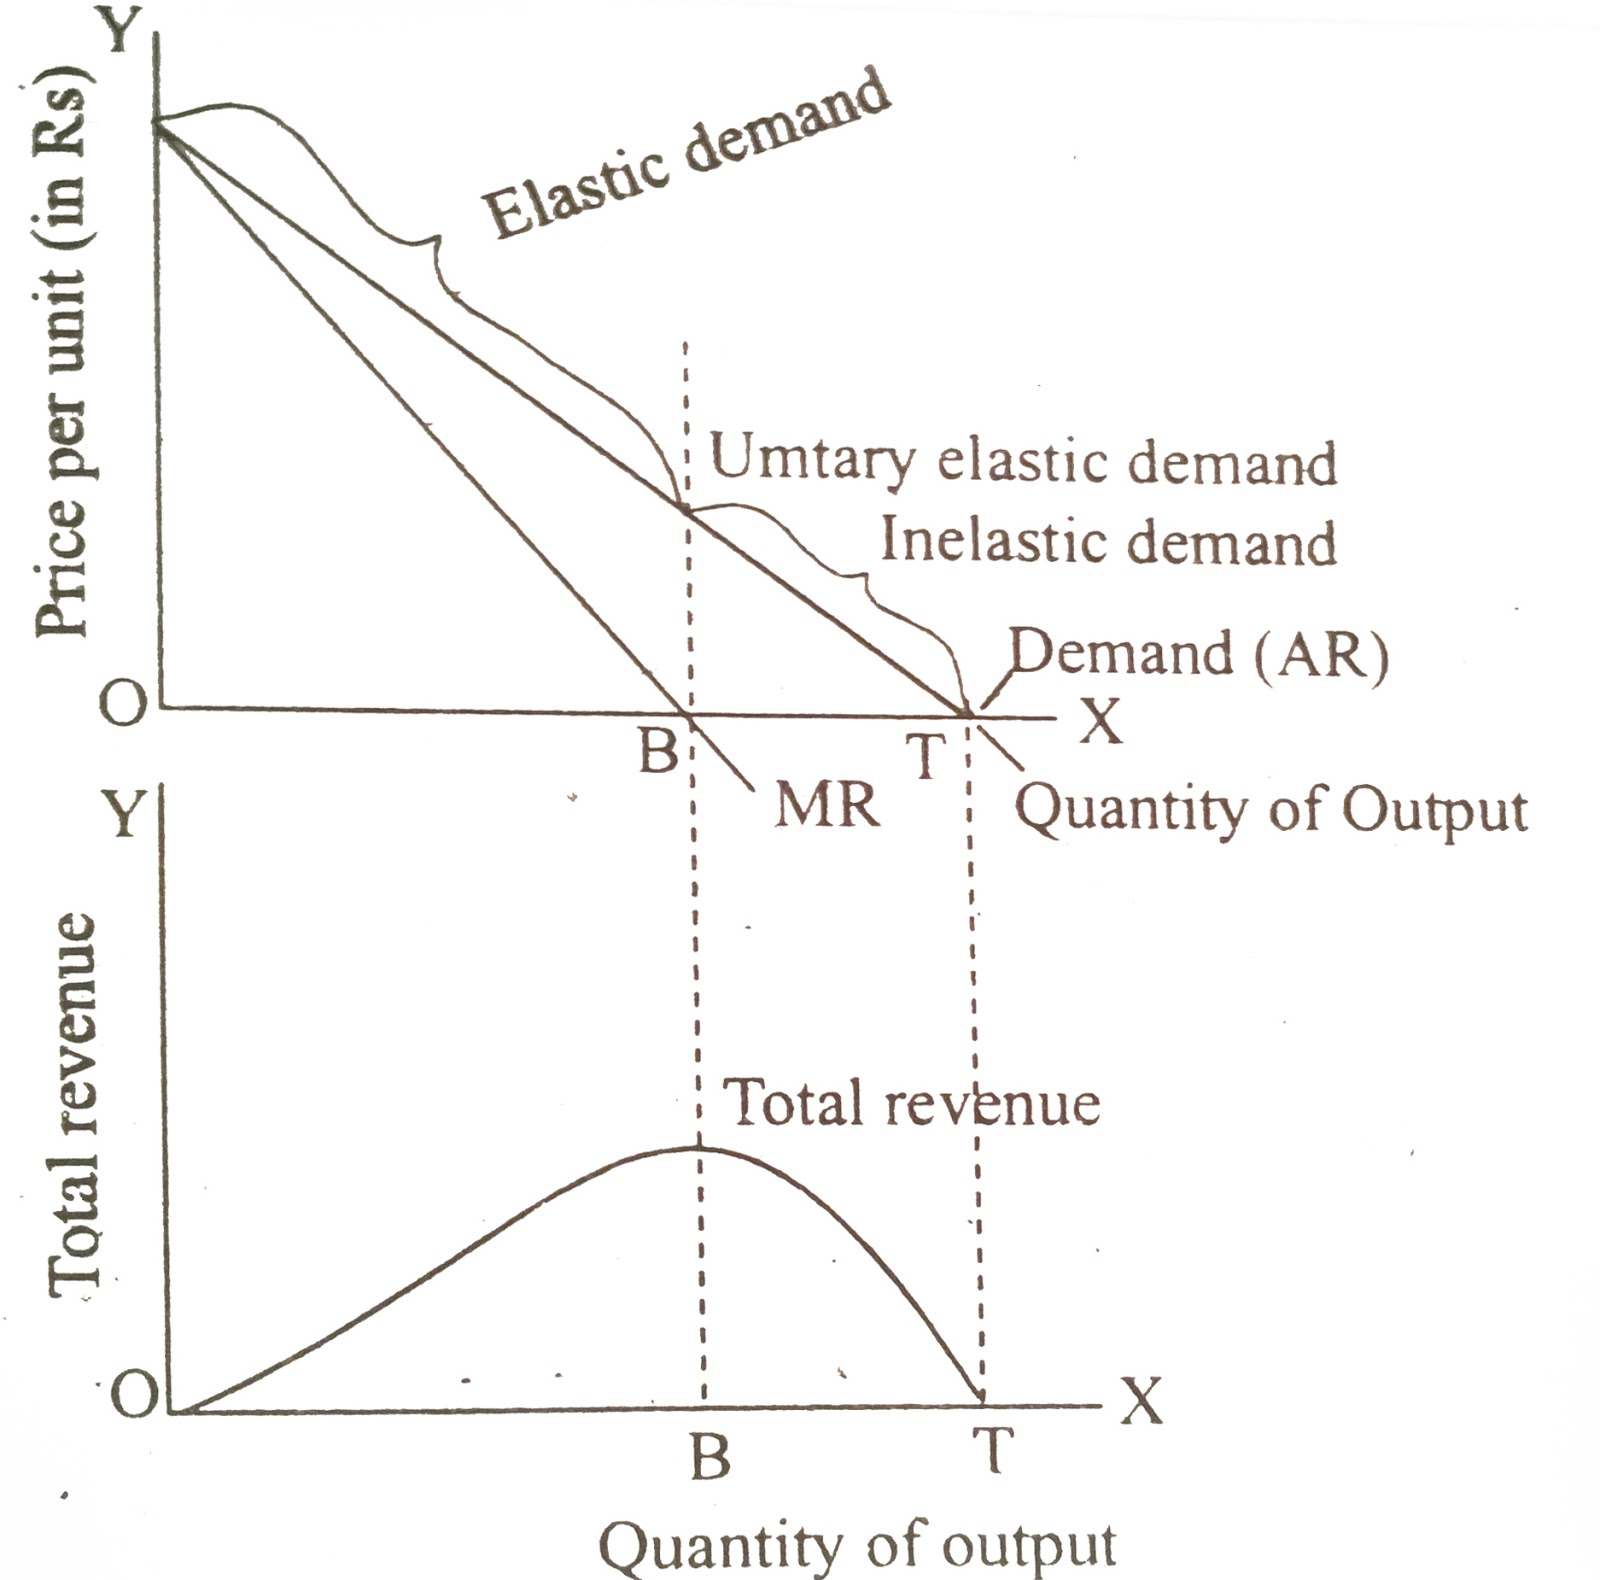 small resolution of the relations among tr mr and price elasticity of demand are reviewed in the figure the top half of the diagram shows a liner demand or ar curve and a